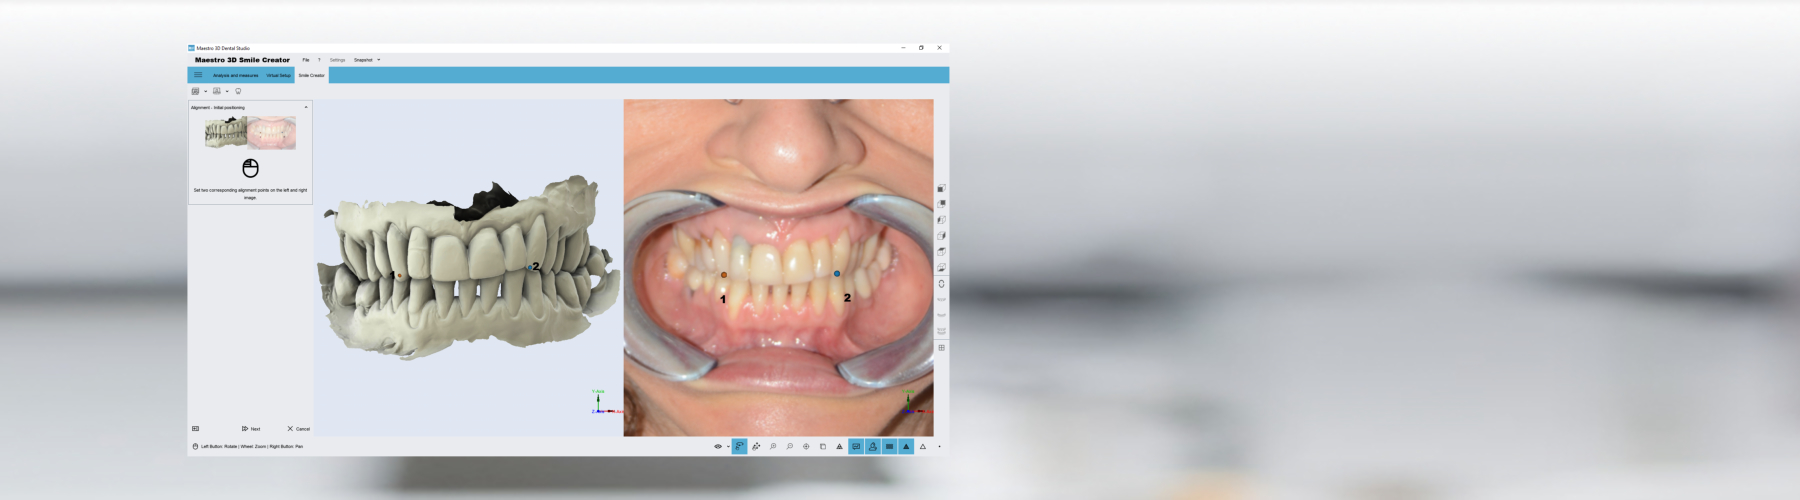 Maestro 3D | Dental Studio | Smile Creator | Digital Mockup